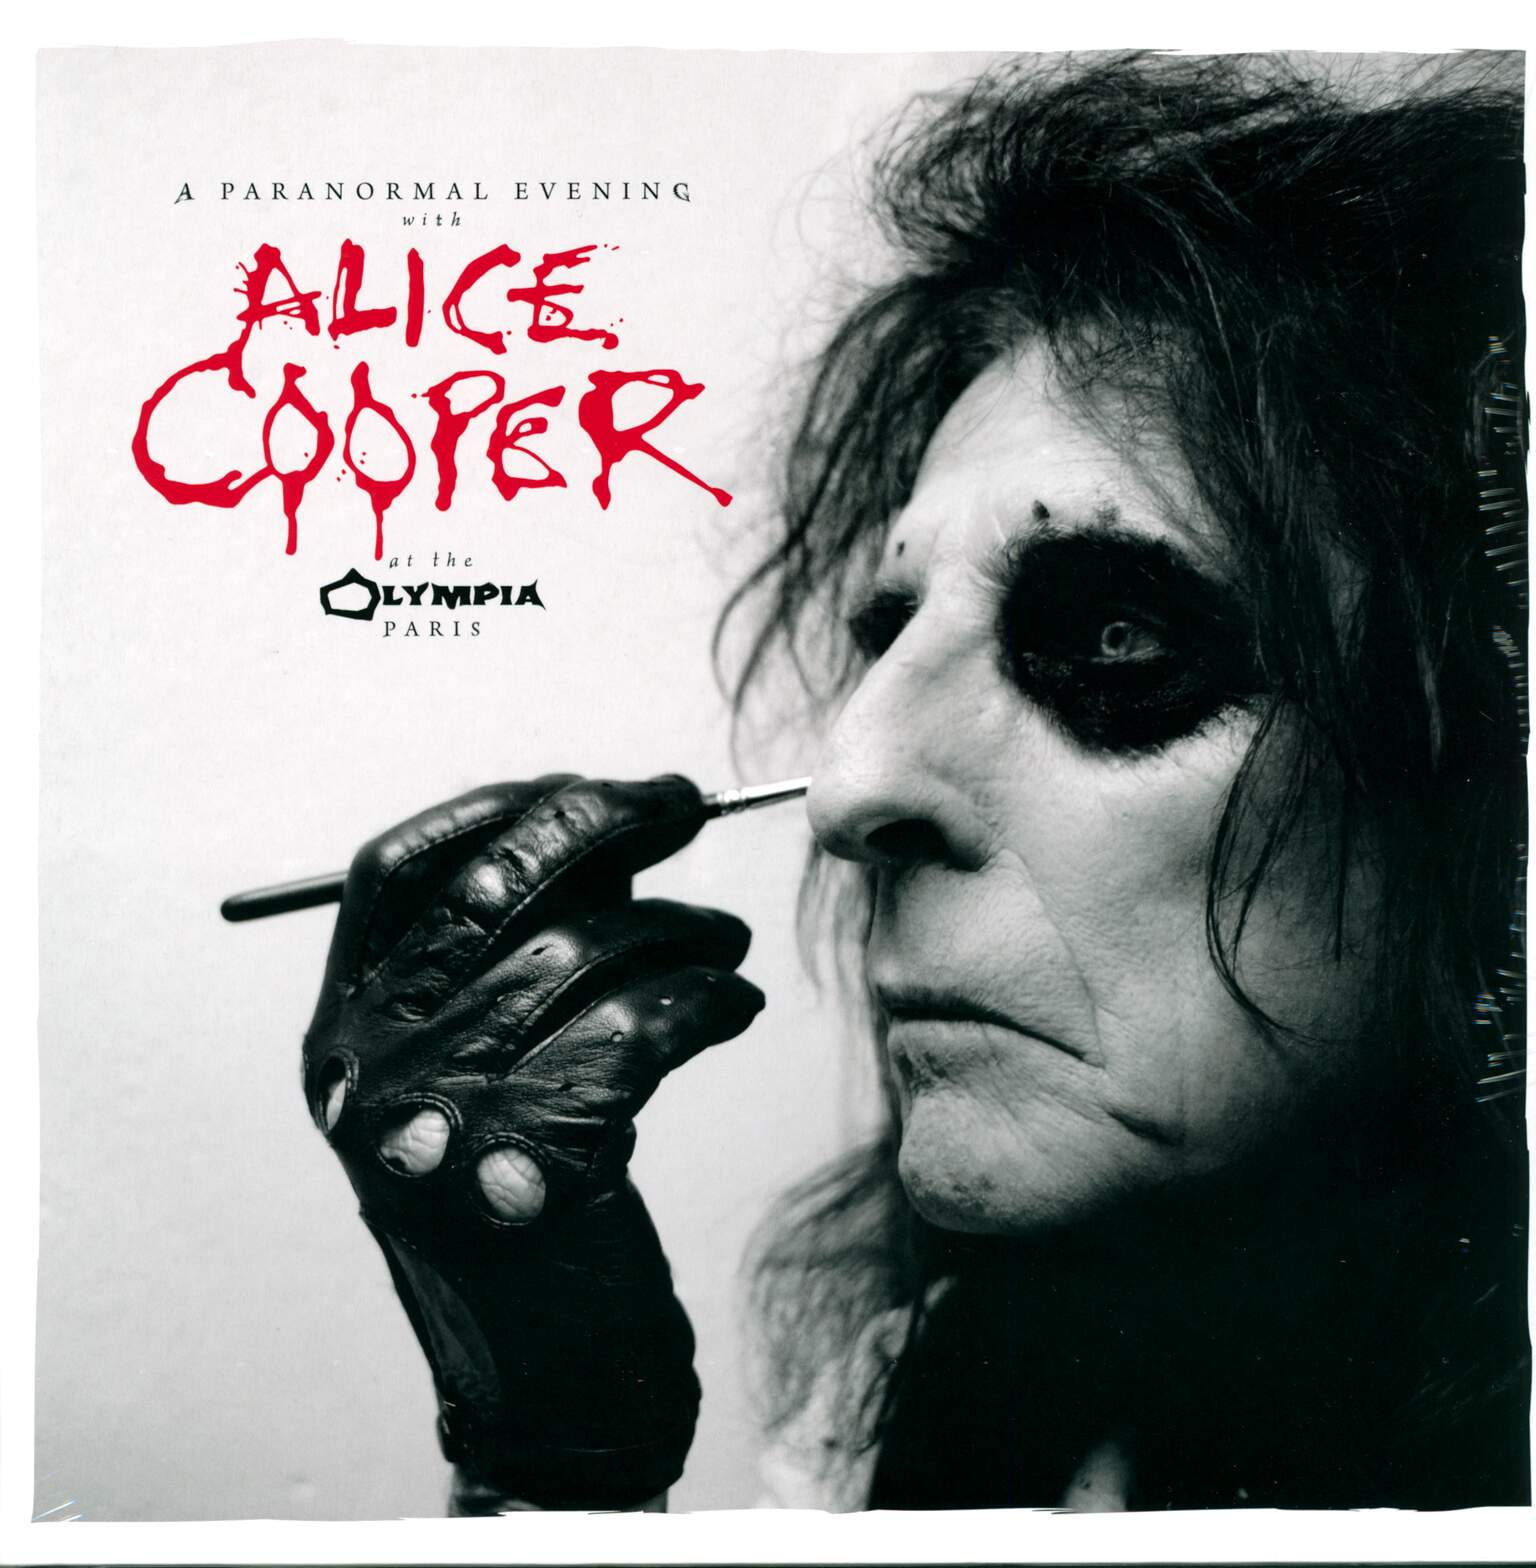 Alice Cooper: A Paranormal Evening With Alice Cooper At The Olympia Paris, 2×LP (Vinyl)